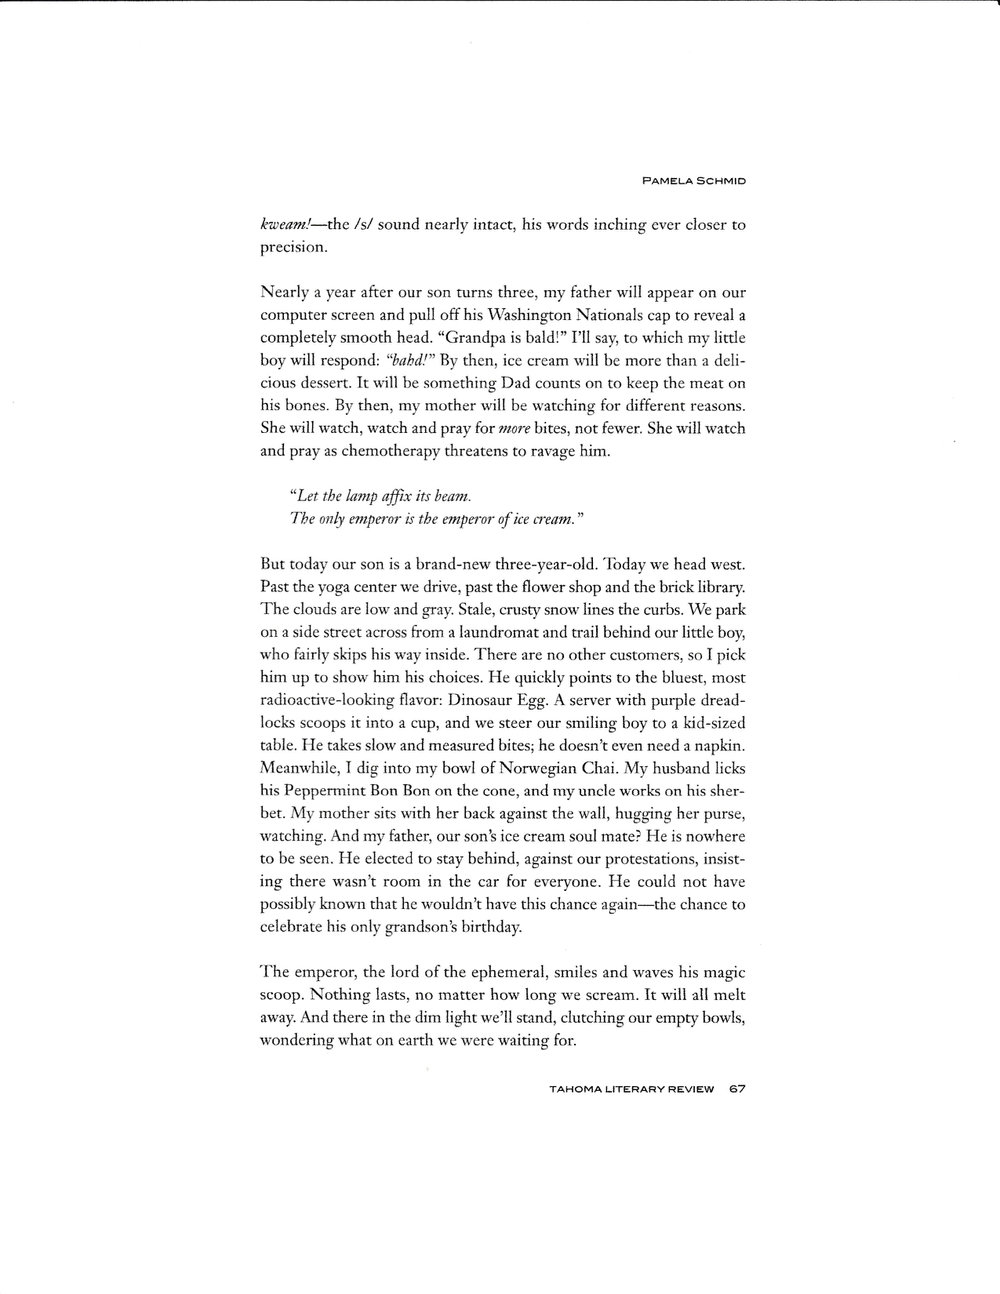 Tahoma_Literary_Review_The_Emperor 11.jpg